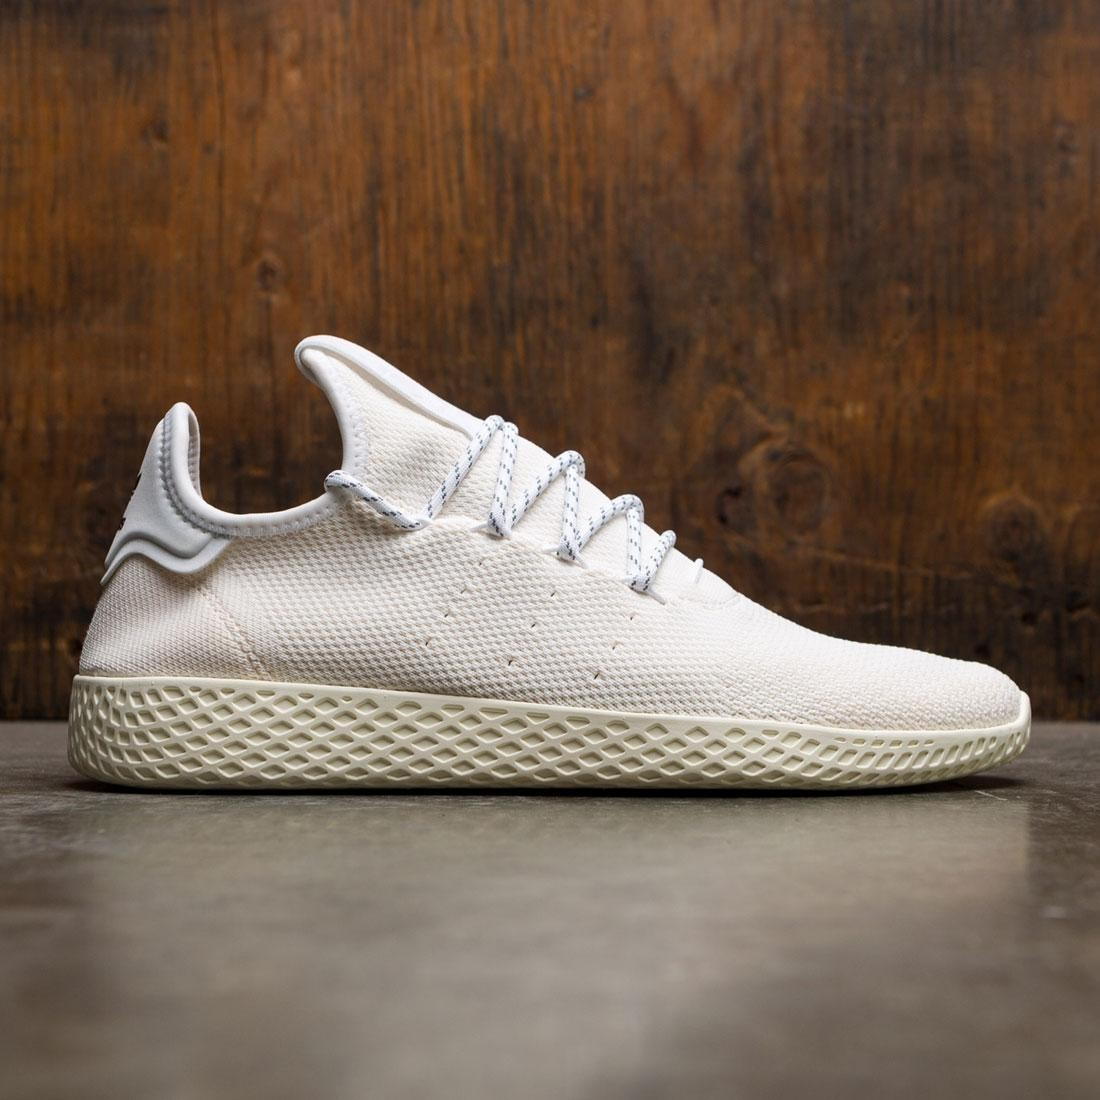 da5230f4d6868 Adidas x Pharrell Williams Men Hu Holi Tennis Hu BC white cream white  footwear white